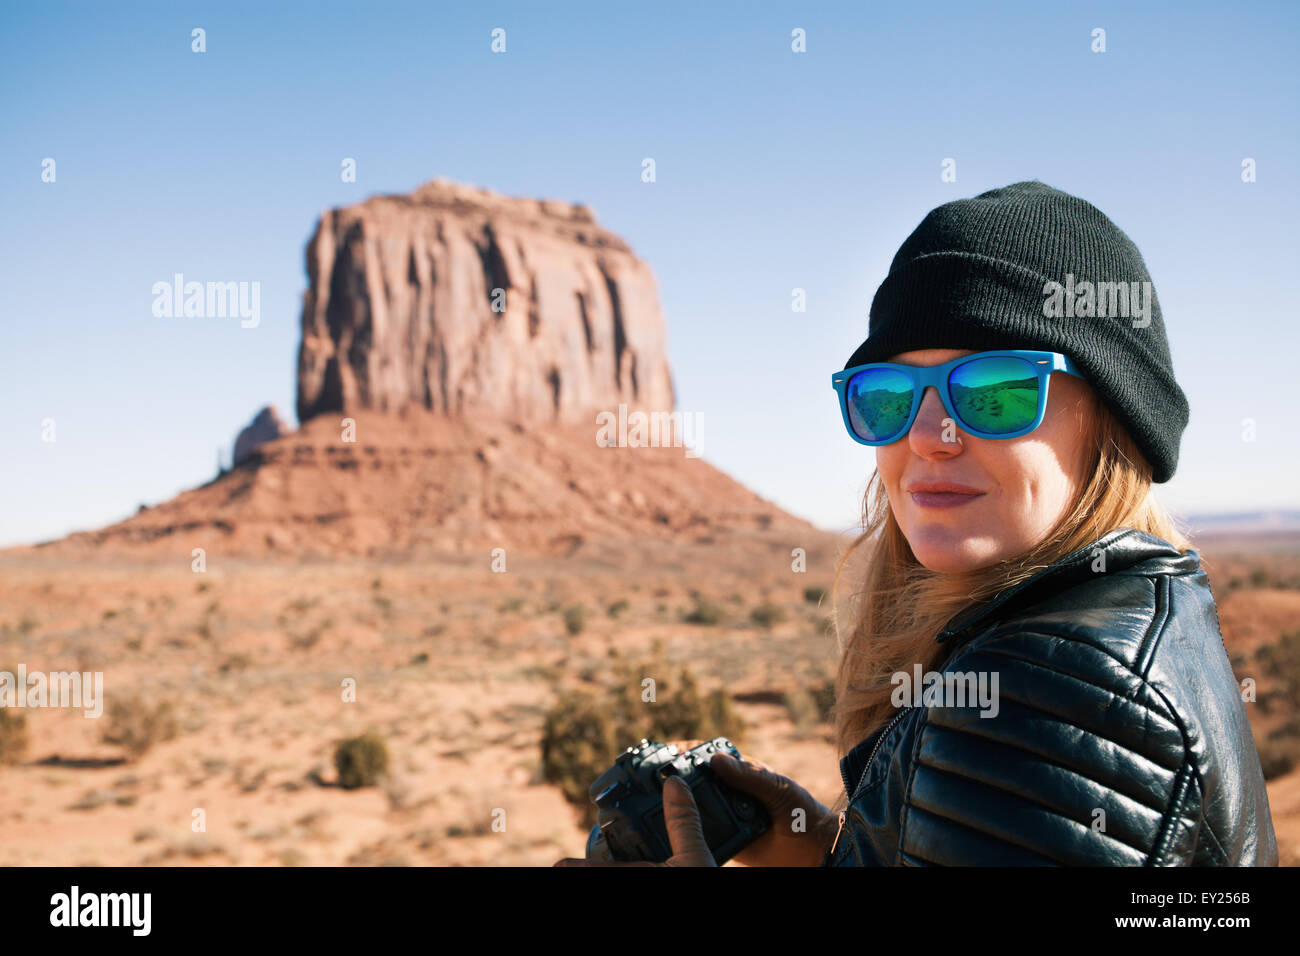 Portrait of woman in blue sunglasses, Monument Valley, Utah, USA - Stock Image